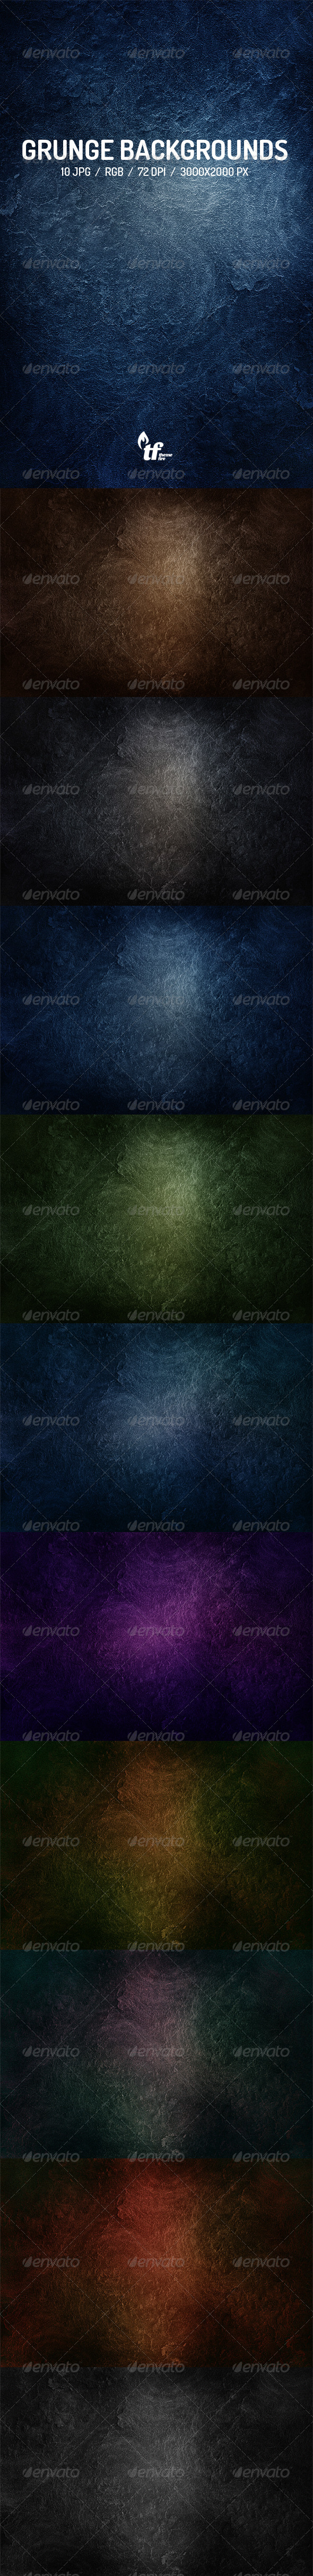 GraphicRiver Grunge Backgrounds 7692949